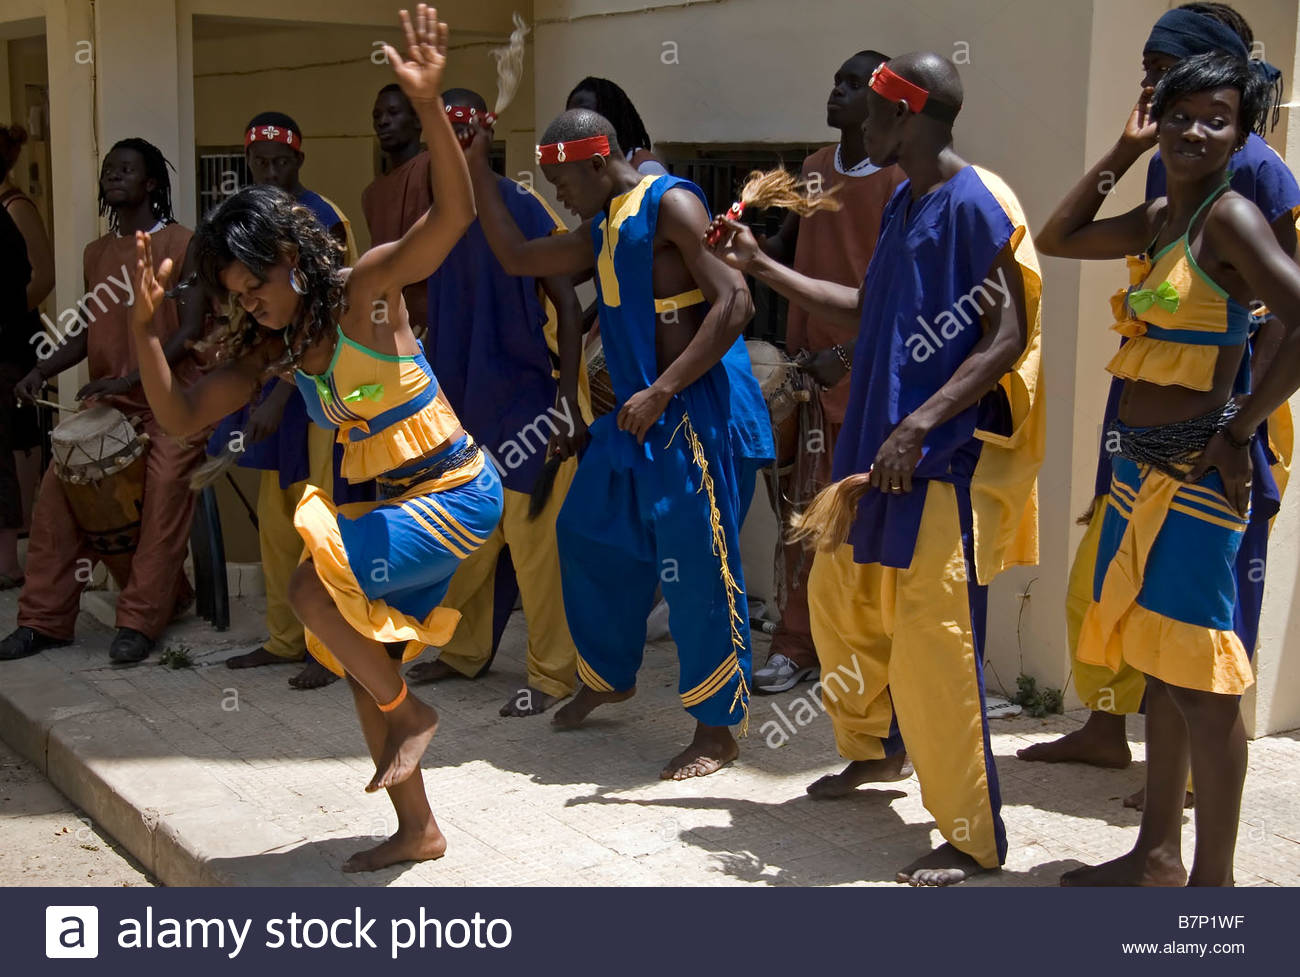 performance-by-traditional-music-and-dance-group-dakar-senegal-B7P1WF.jpg